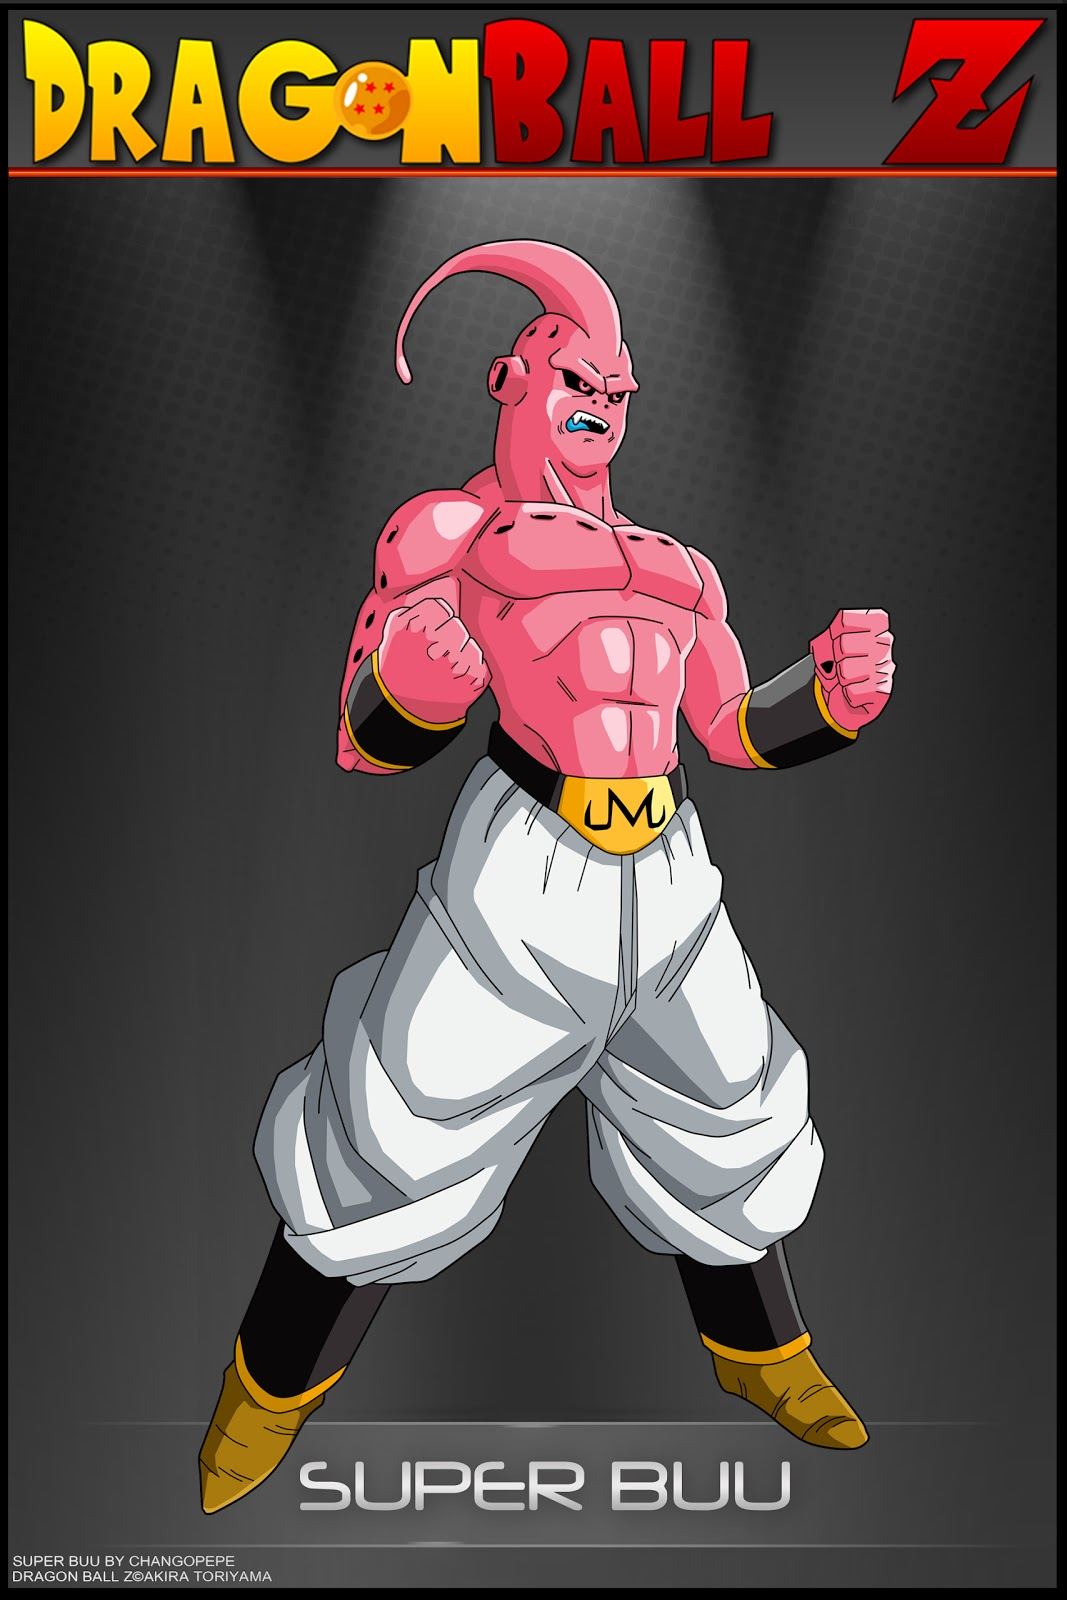 Dragon ball z wallpapers super buu - Images dragon ball z ...